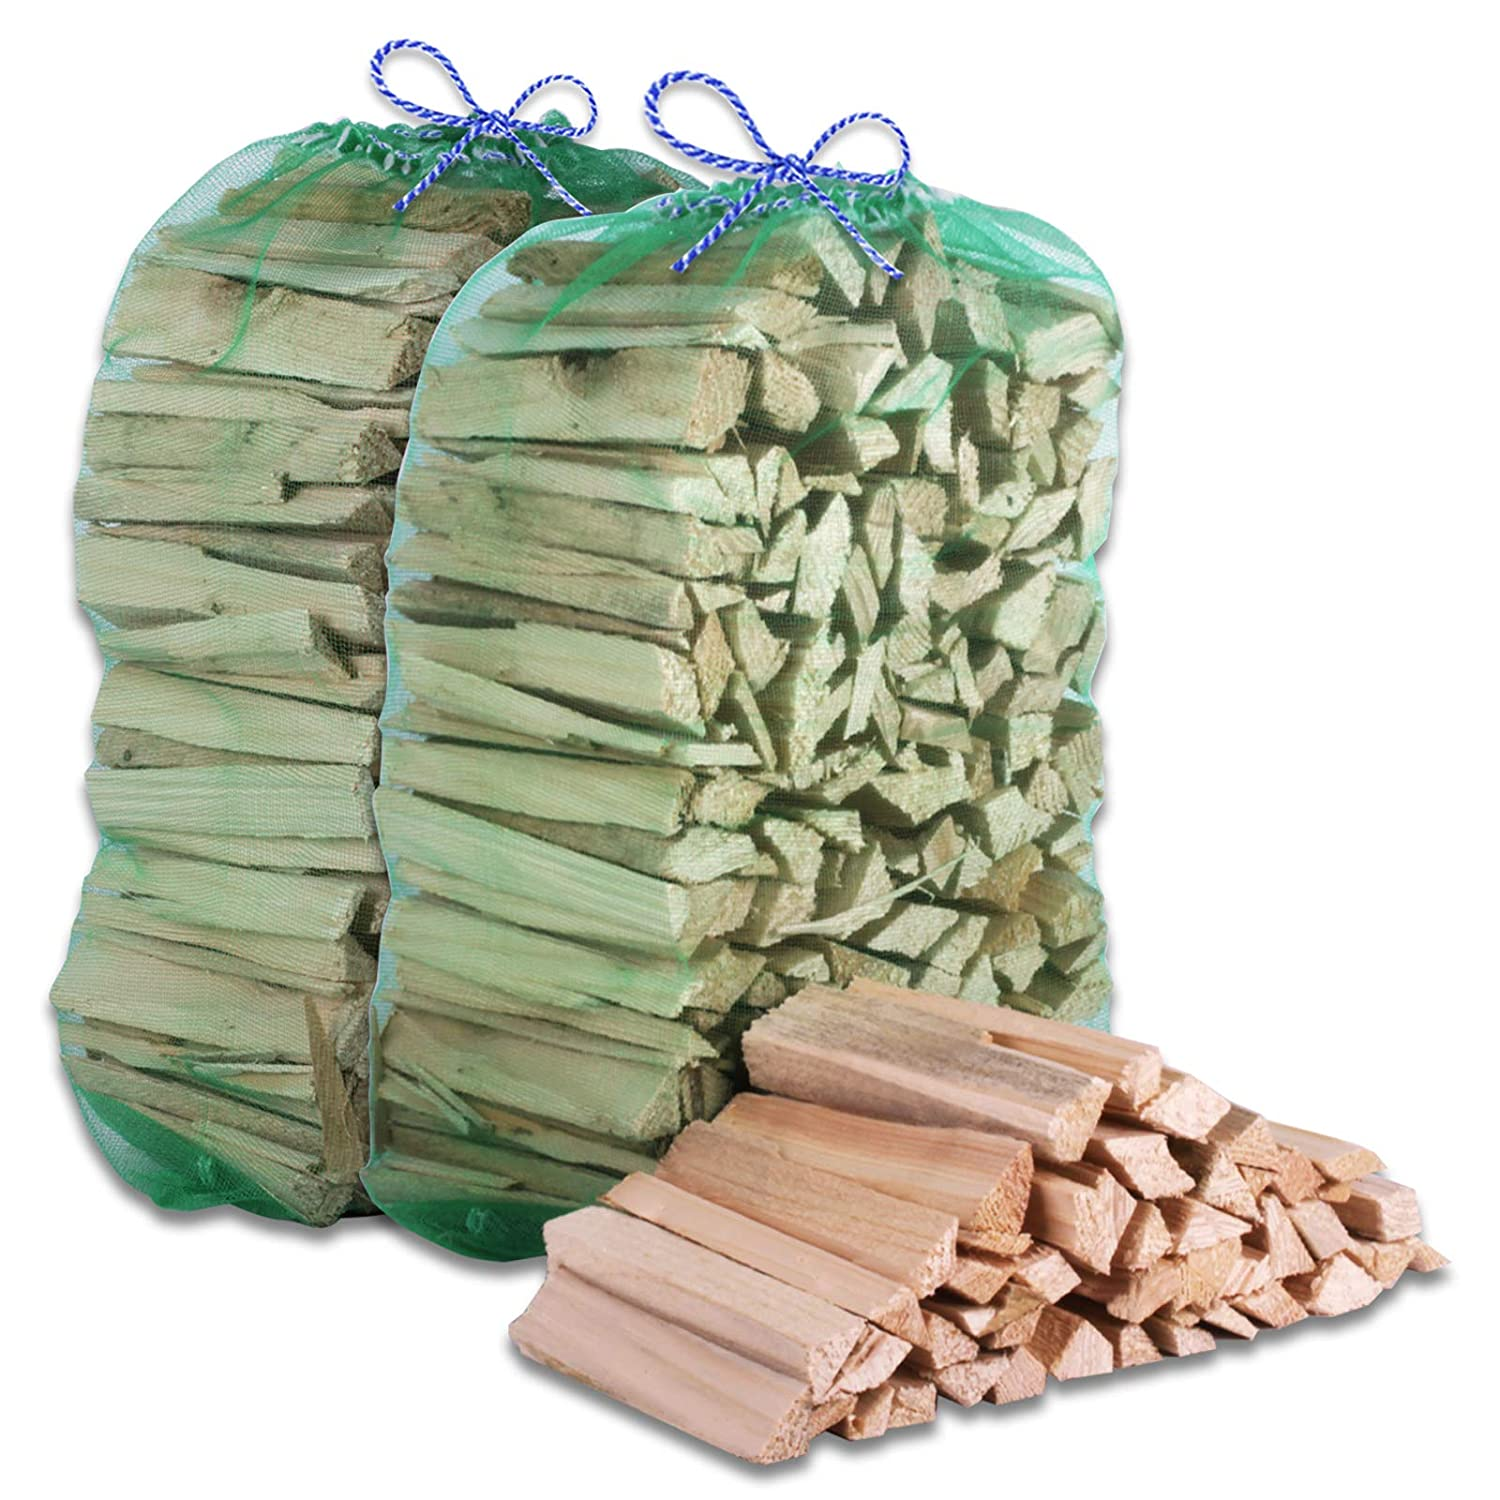 BBQ /& Ovens Wood Burners 6KG /& Tigerbox Safety Matches Open Fires Tigerbox/® High Quality Wooden Kindling Stoves Ideal for Fire Starting